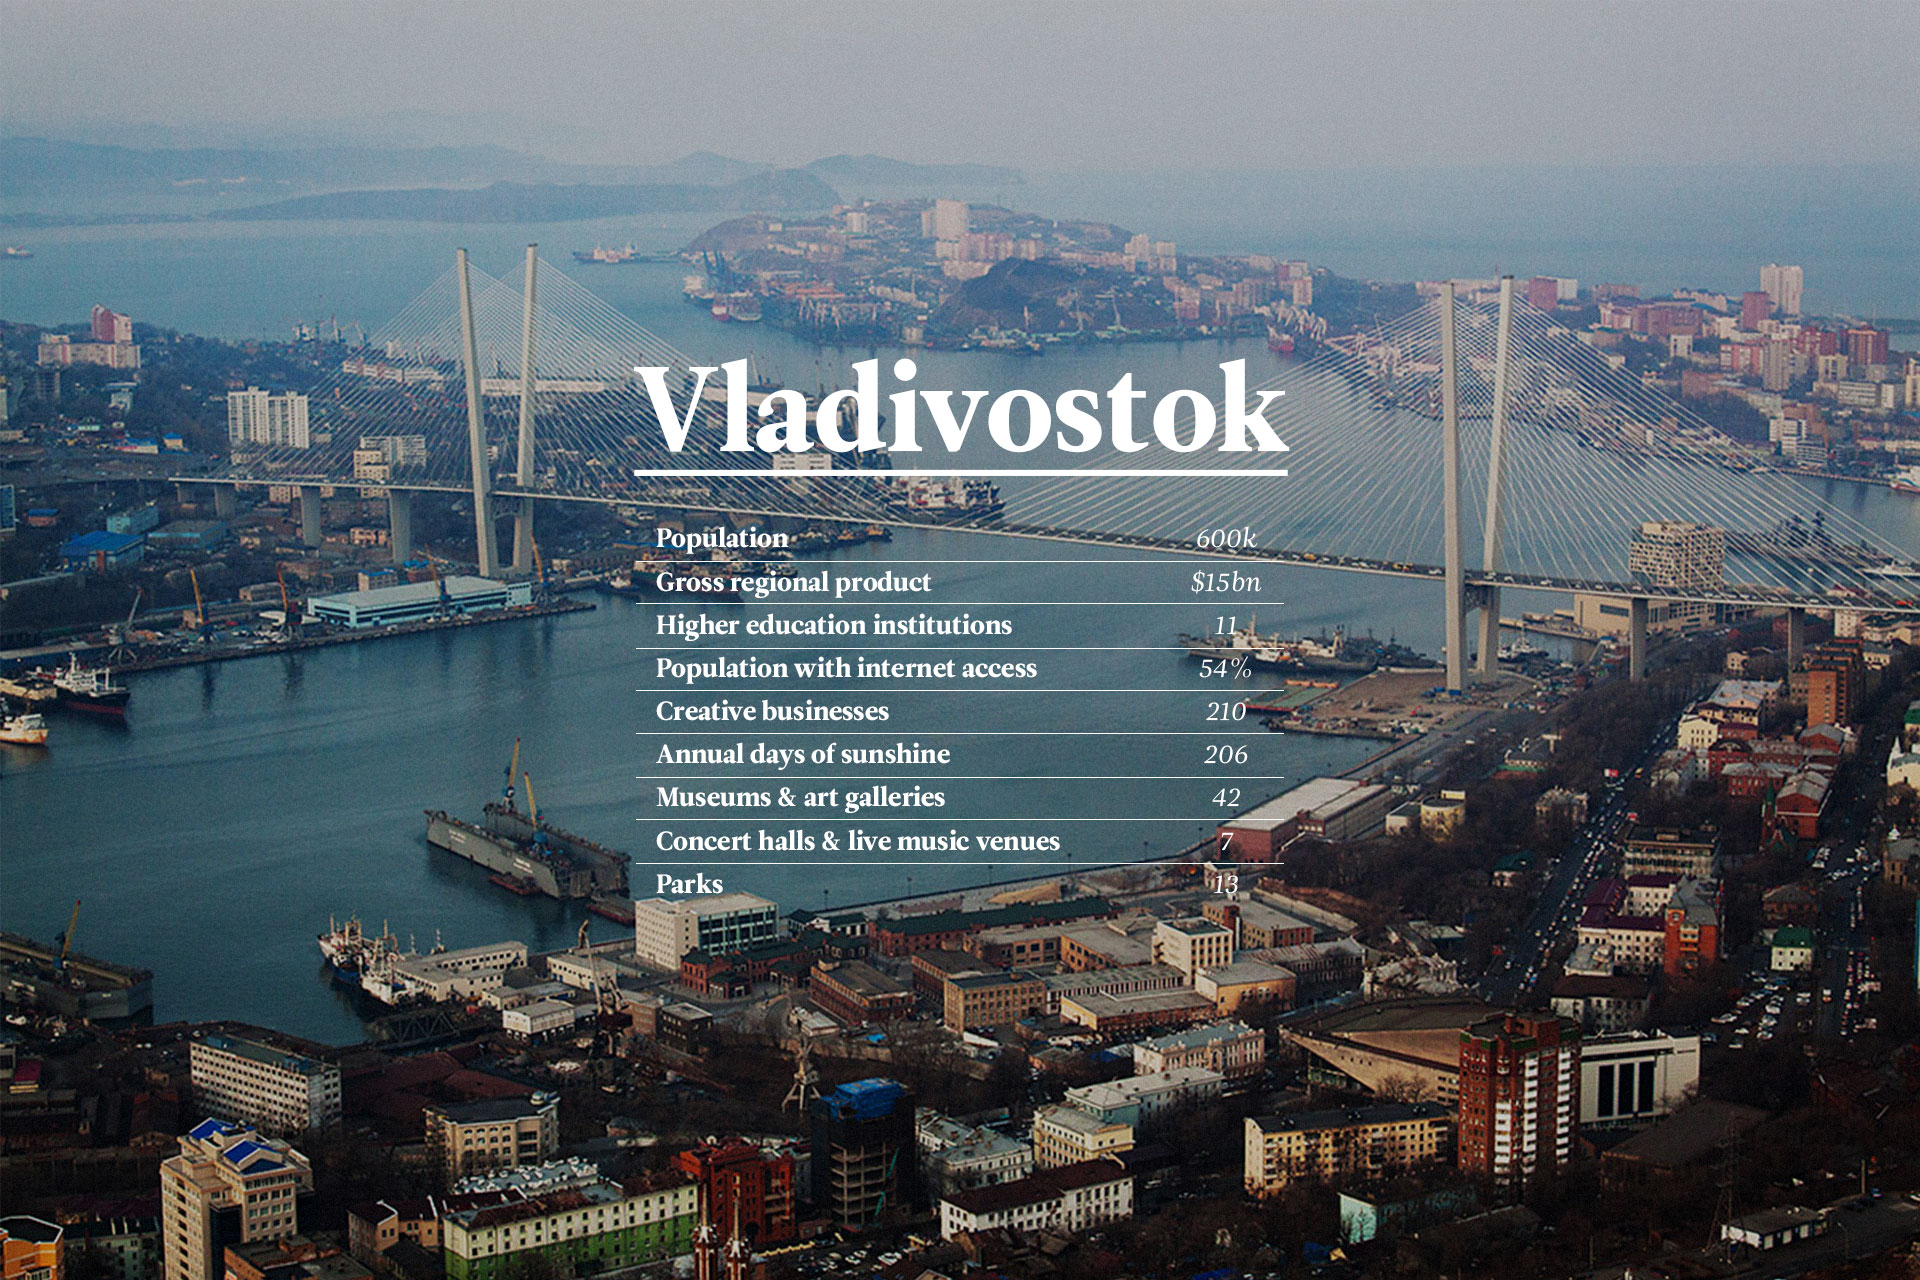 Winter Wallpaper Full Hd Creative Cities 2014 From Moscow To Vladivostok Our List